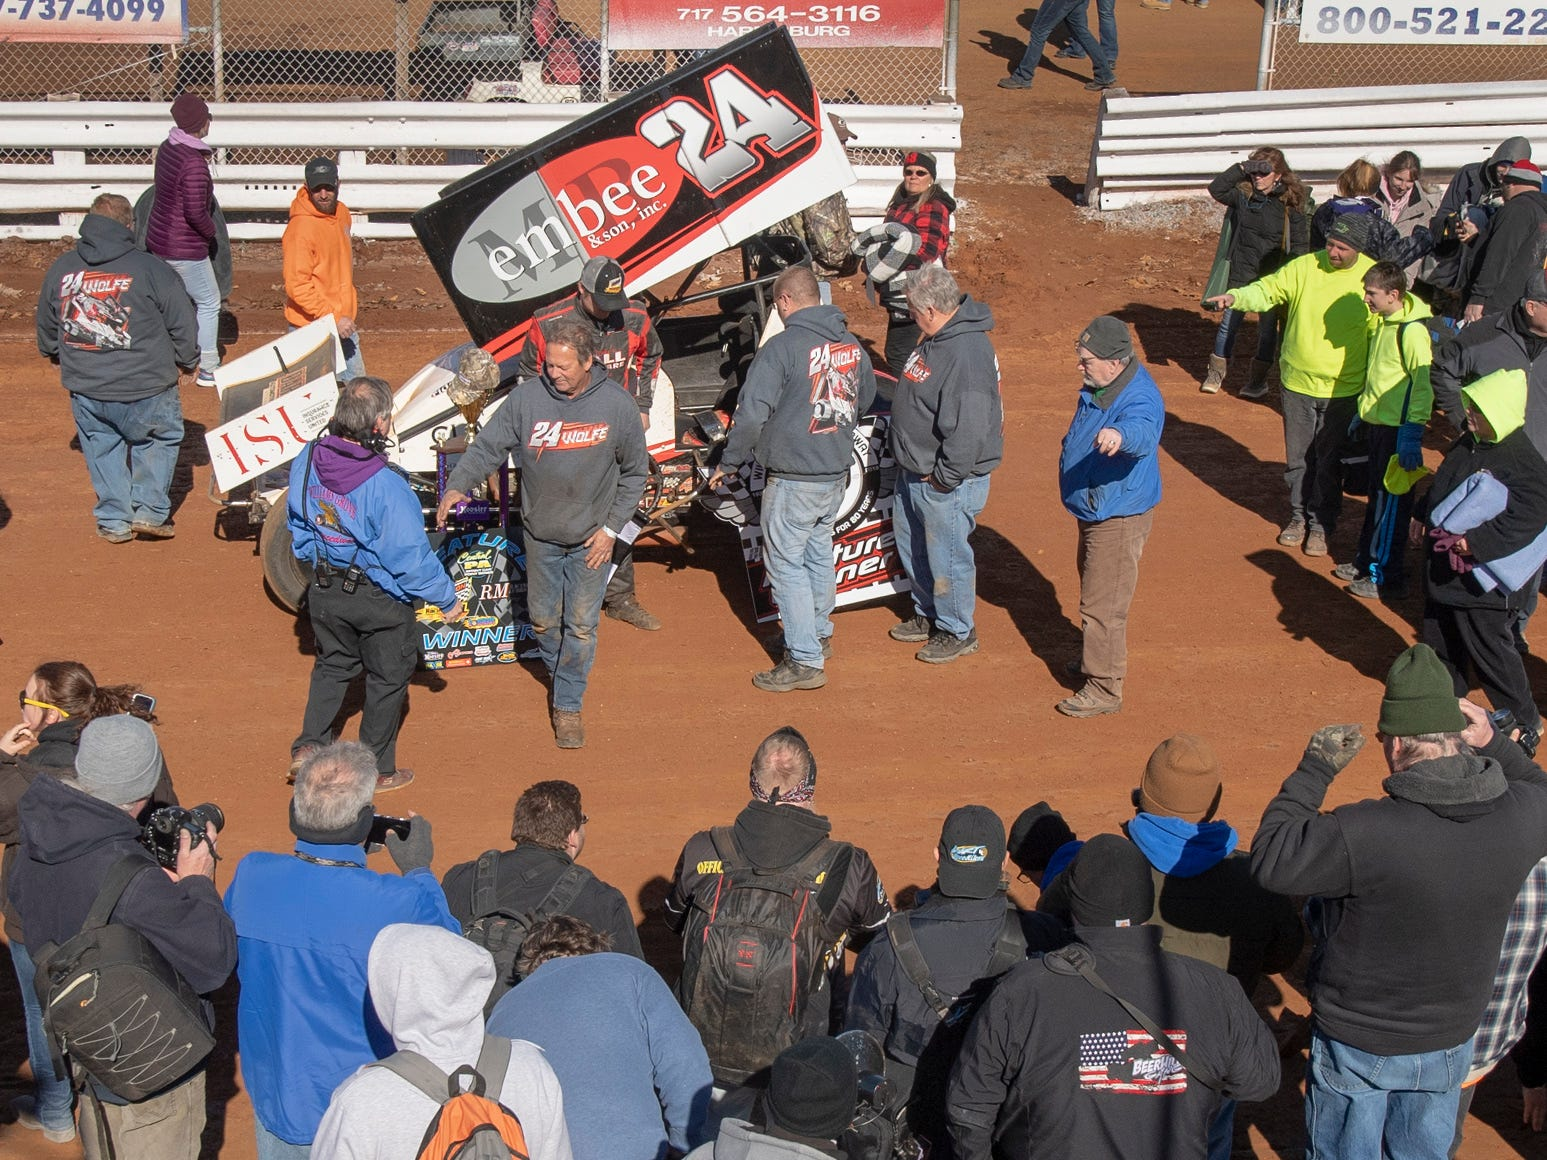 Media and fans surround the #24 car after Lucas Wolfe won the feature event during the Williams Grove season opener for 410 sprints Sunday March 17, 2019.